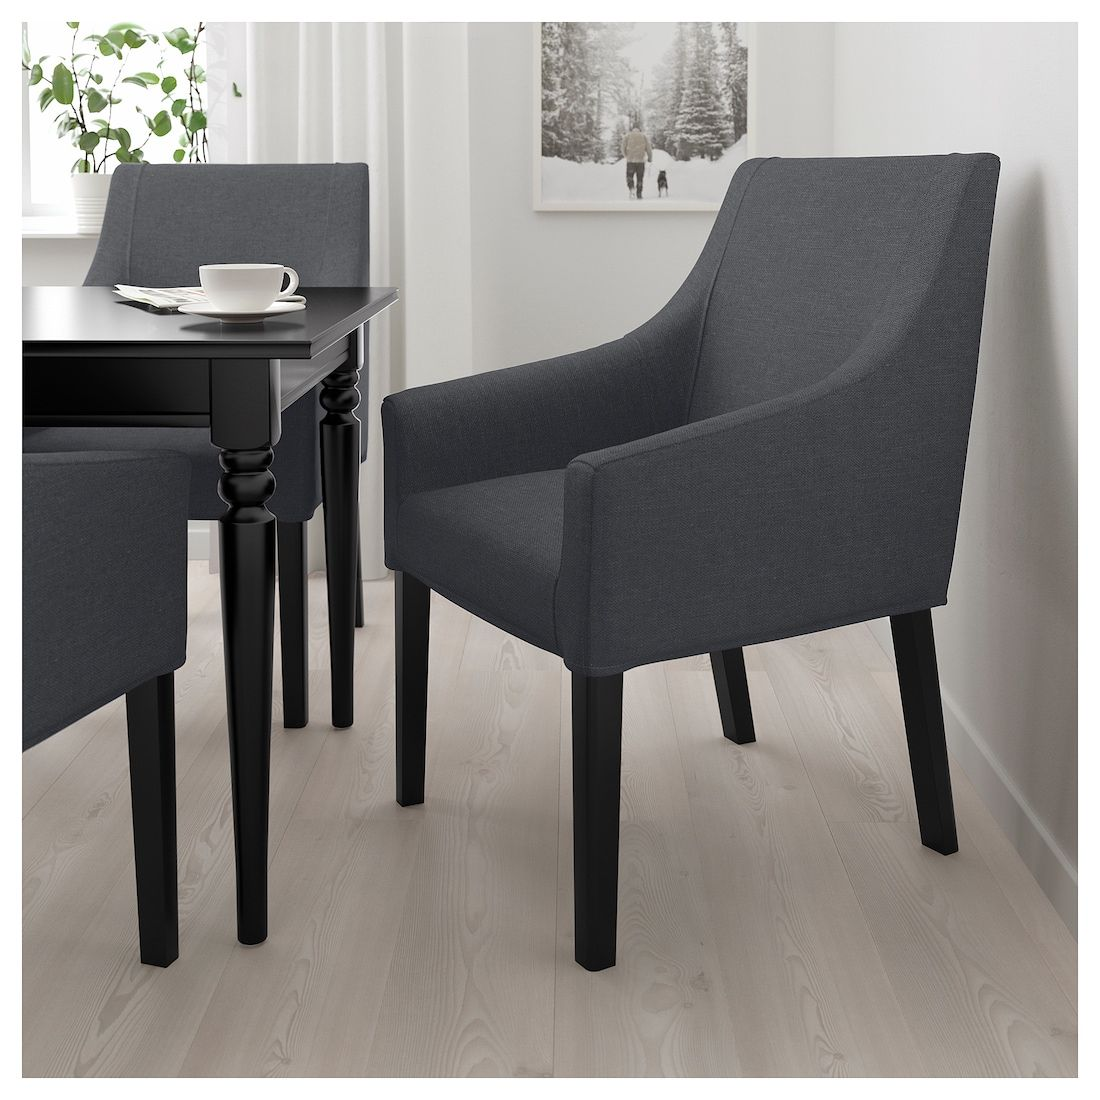 4 Ikea dining chairs for sale | in Sheffield, South ...